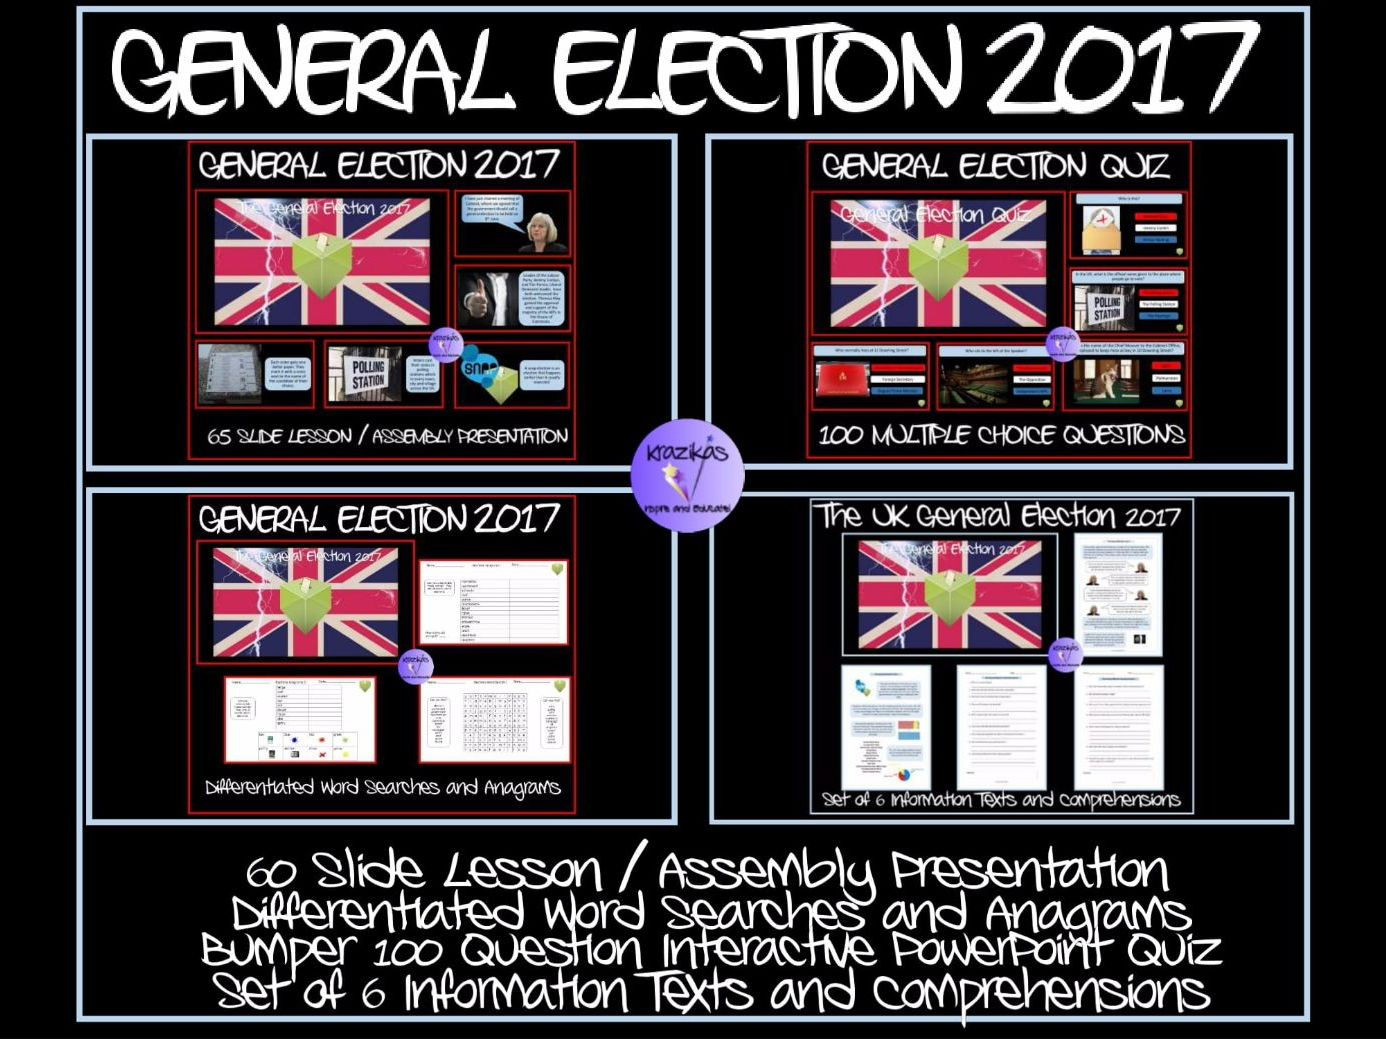 The UK General Election Bundle - Two Presentations, 100 Question Quiz, Information Texts and Comprehension Questions, Set of 6 Differentiated Word Seaches and Anagrams